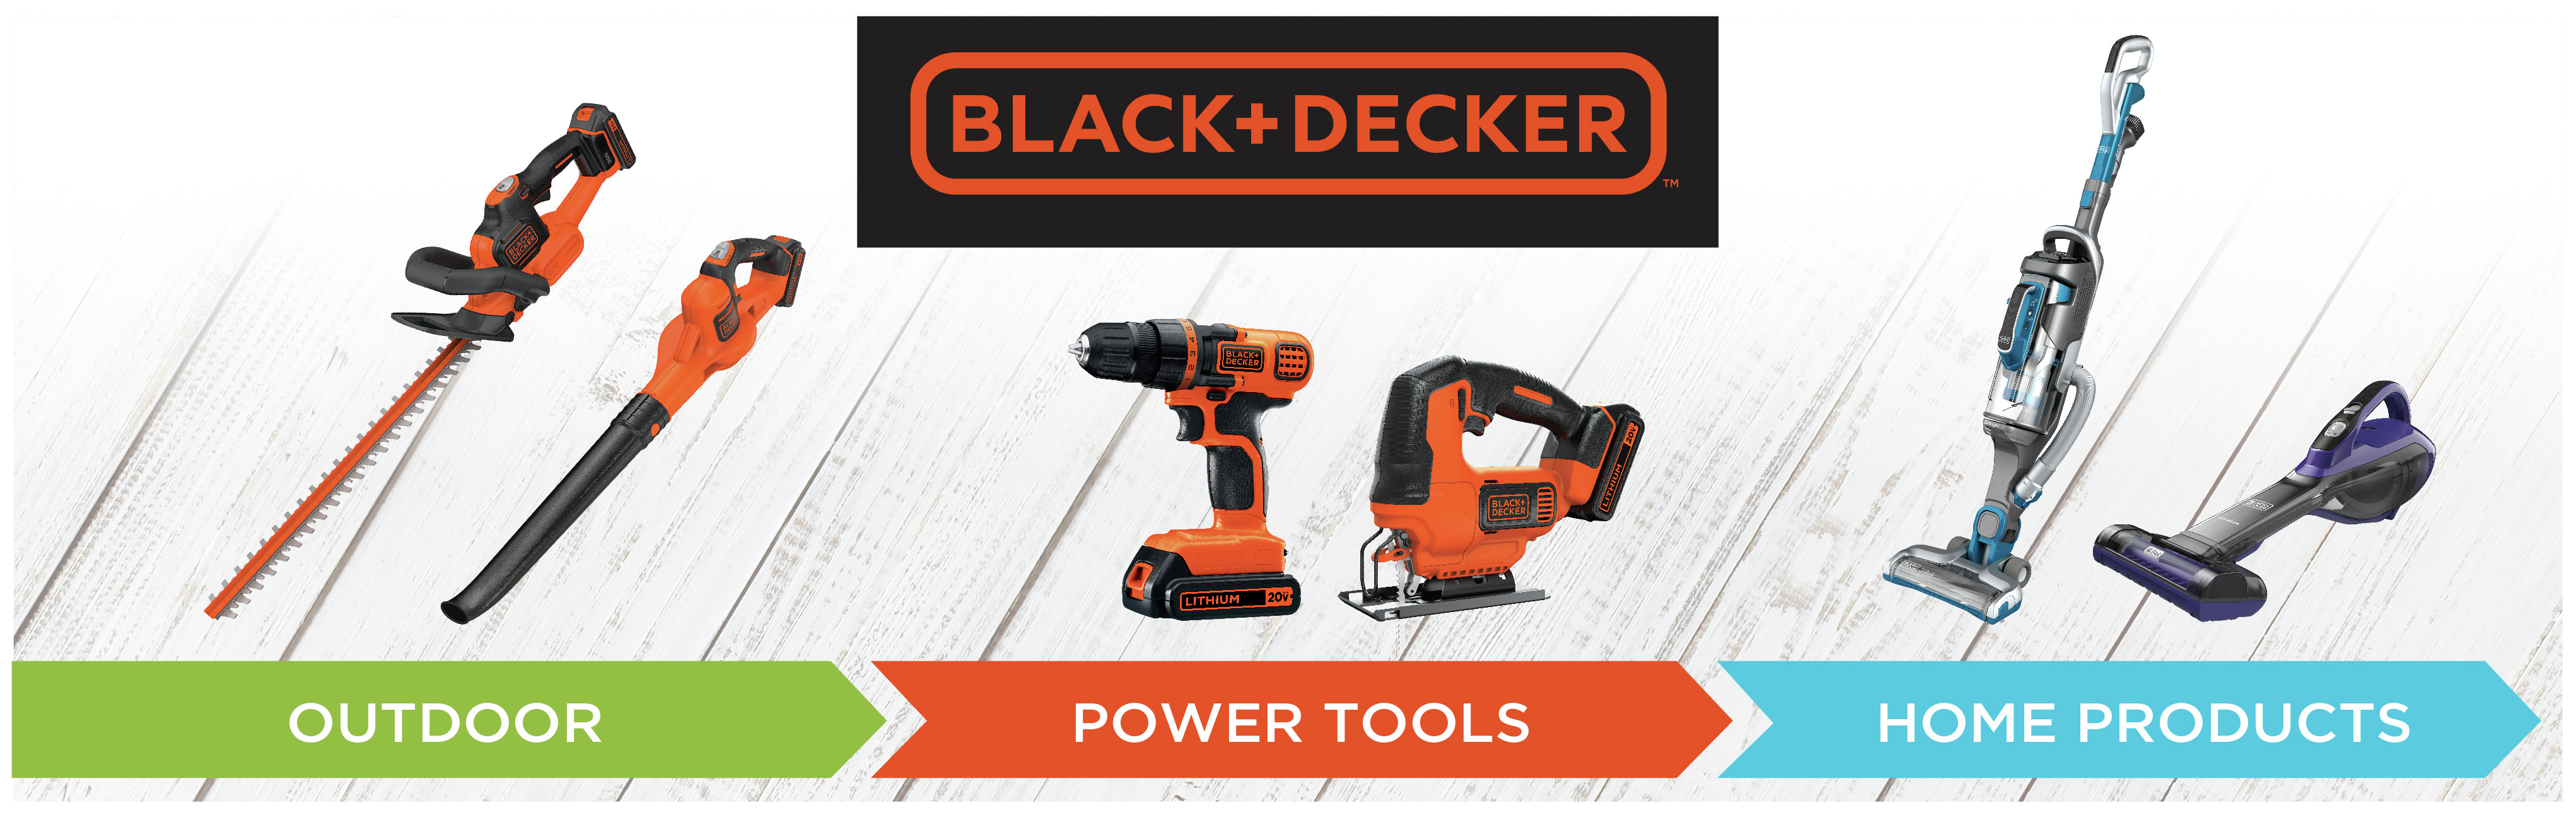 Outdoor, Powertools, Home Products